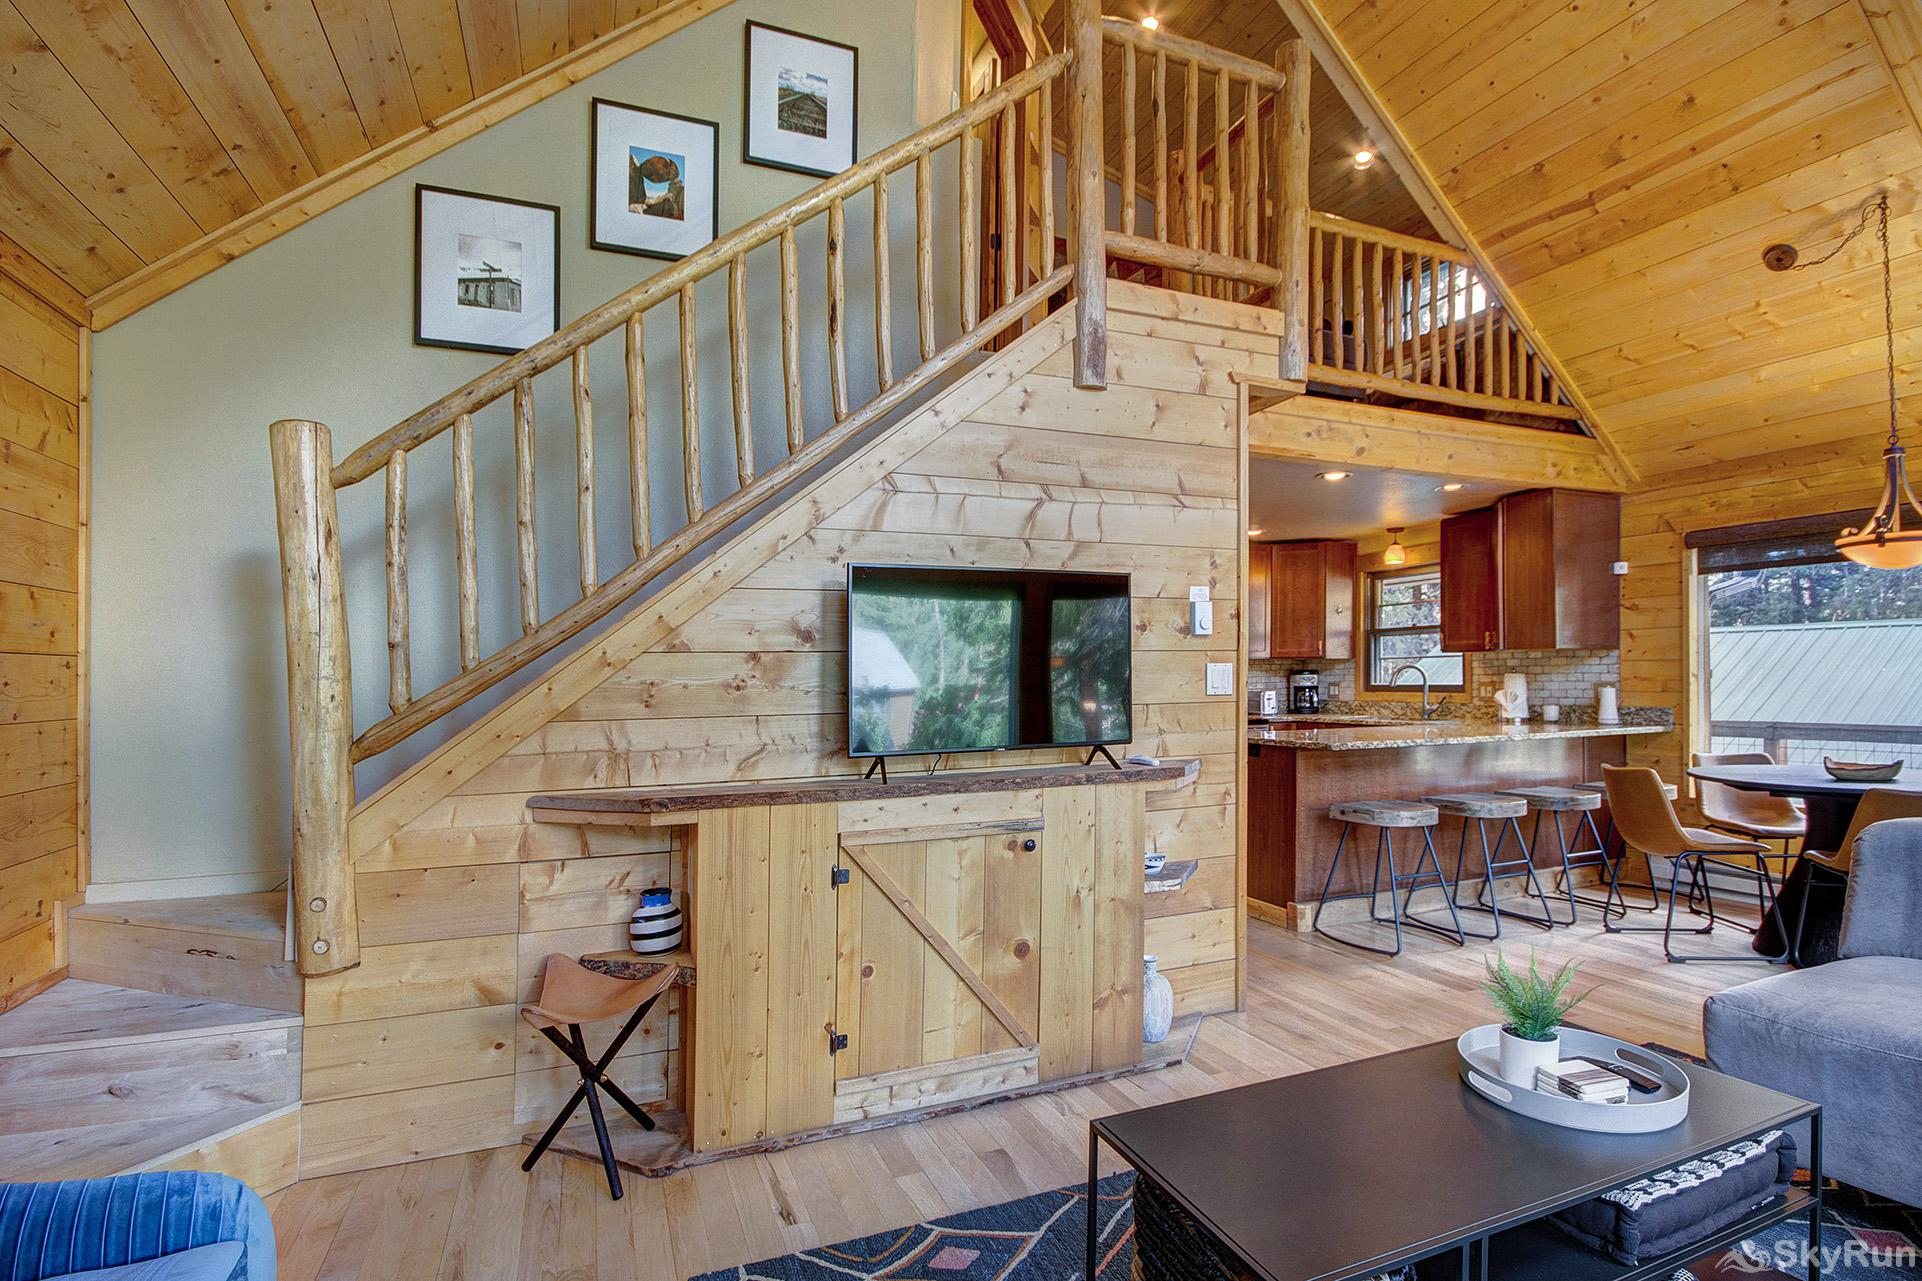 Black Bear Chalet Wooded cabin in the Rocky Mountains!